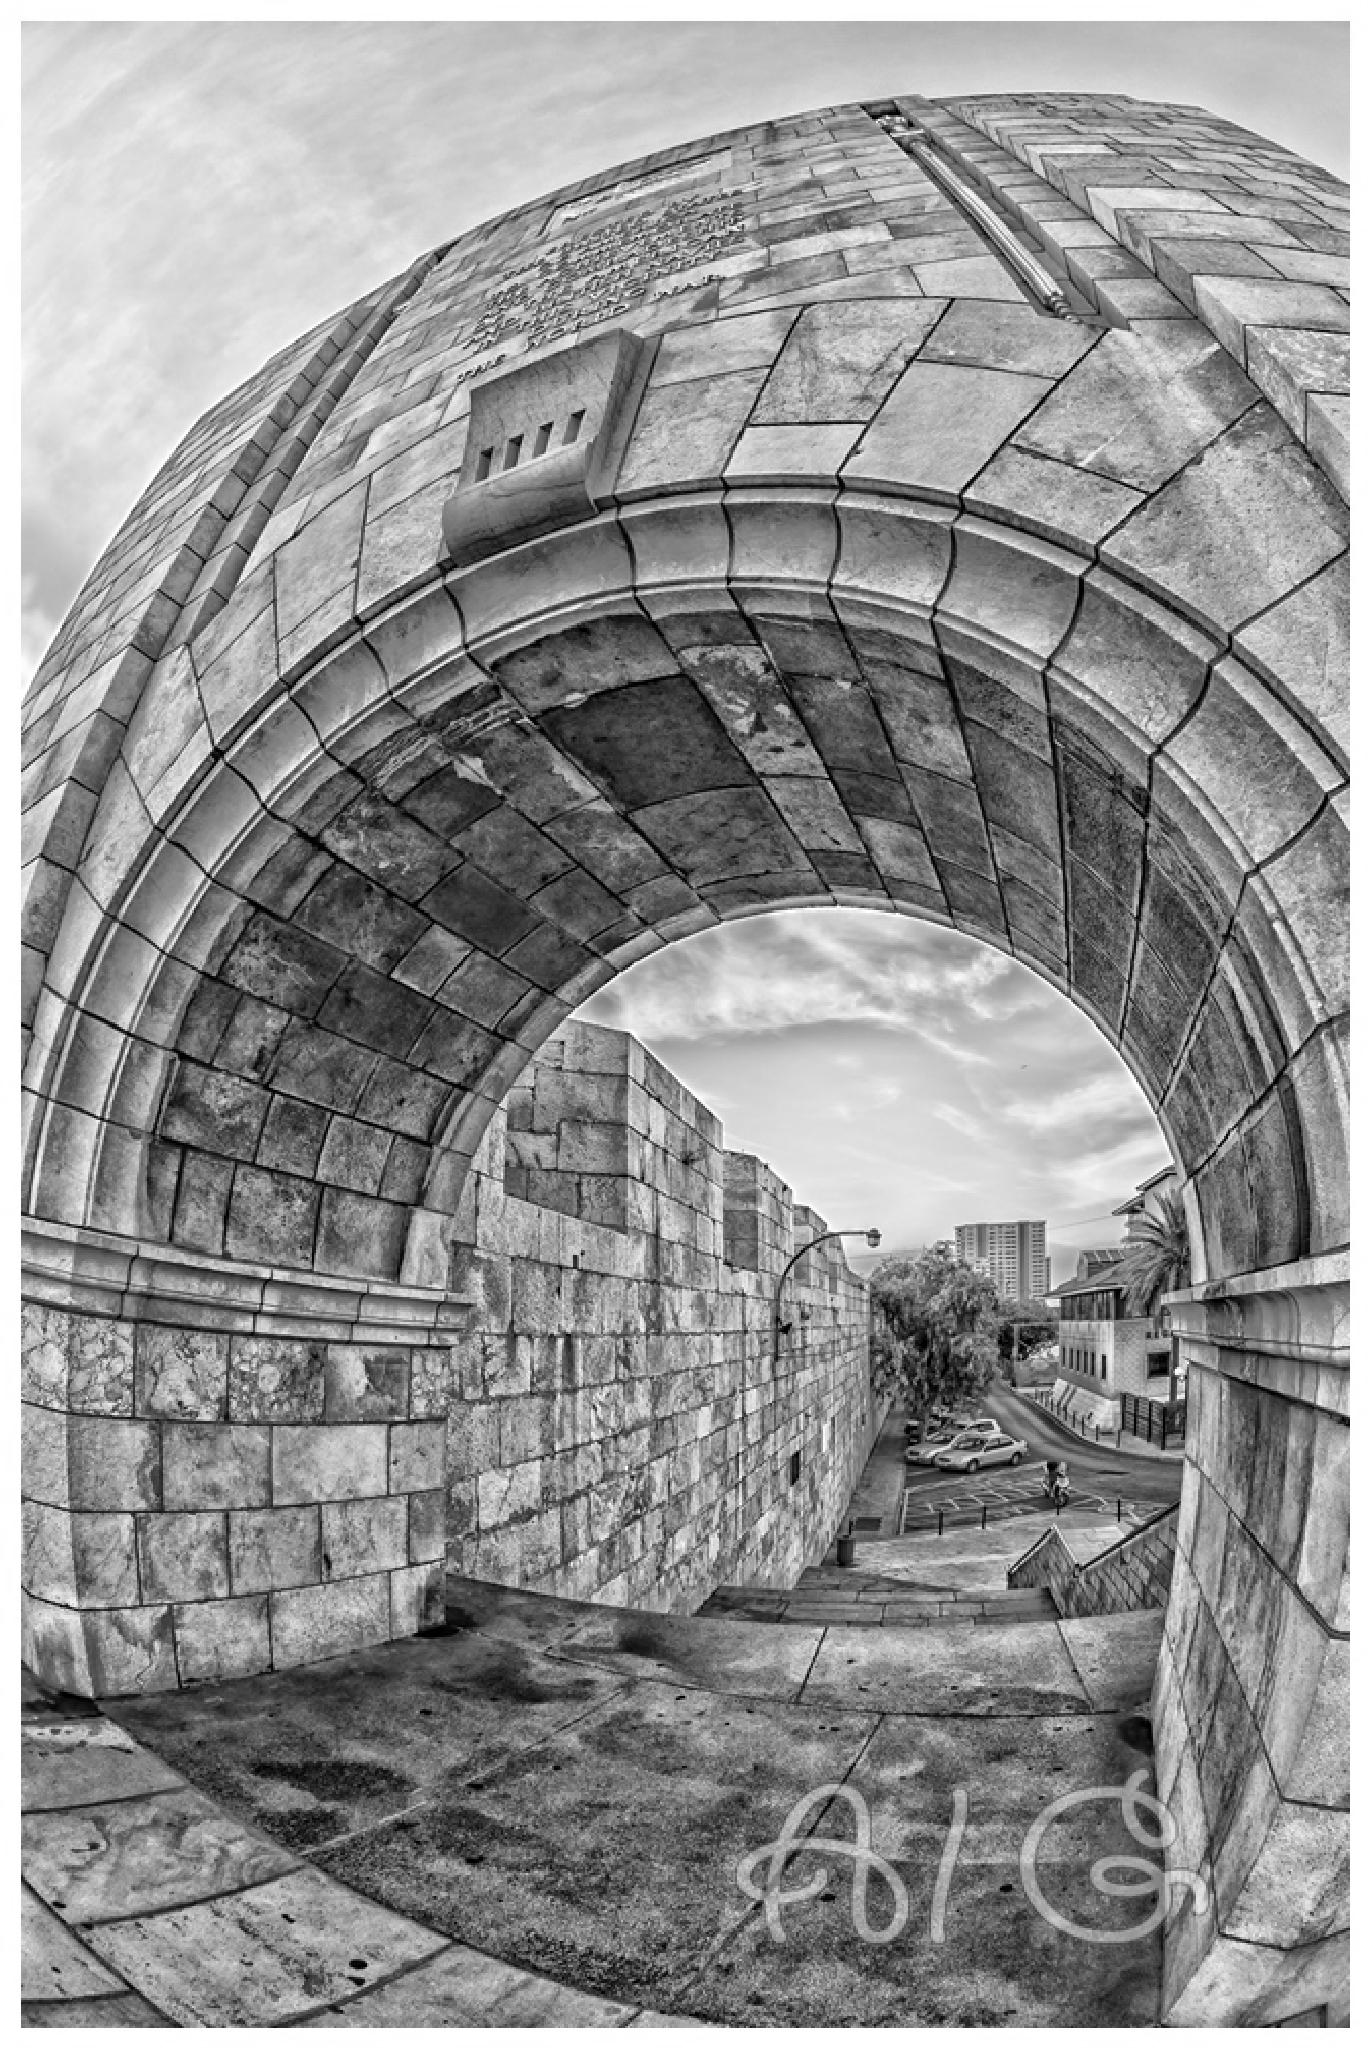 Tunnel Vision by AlanG